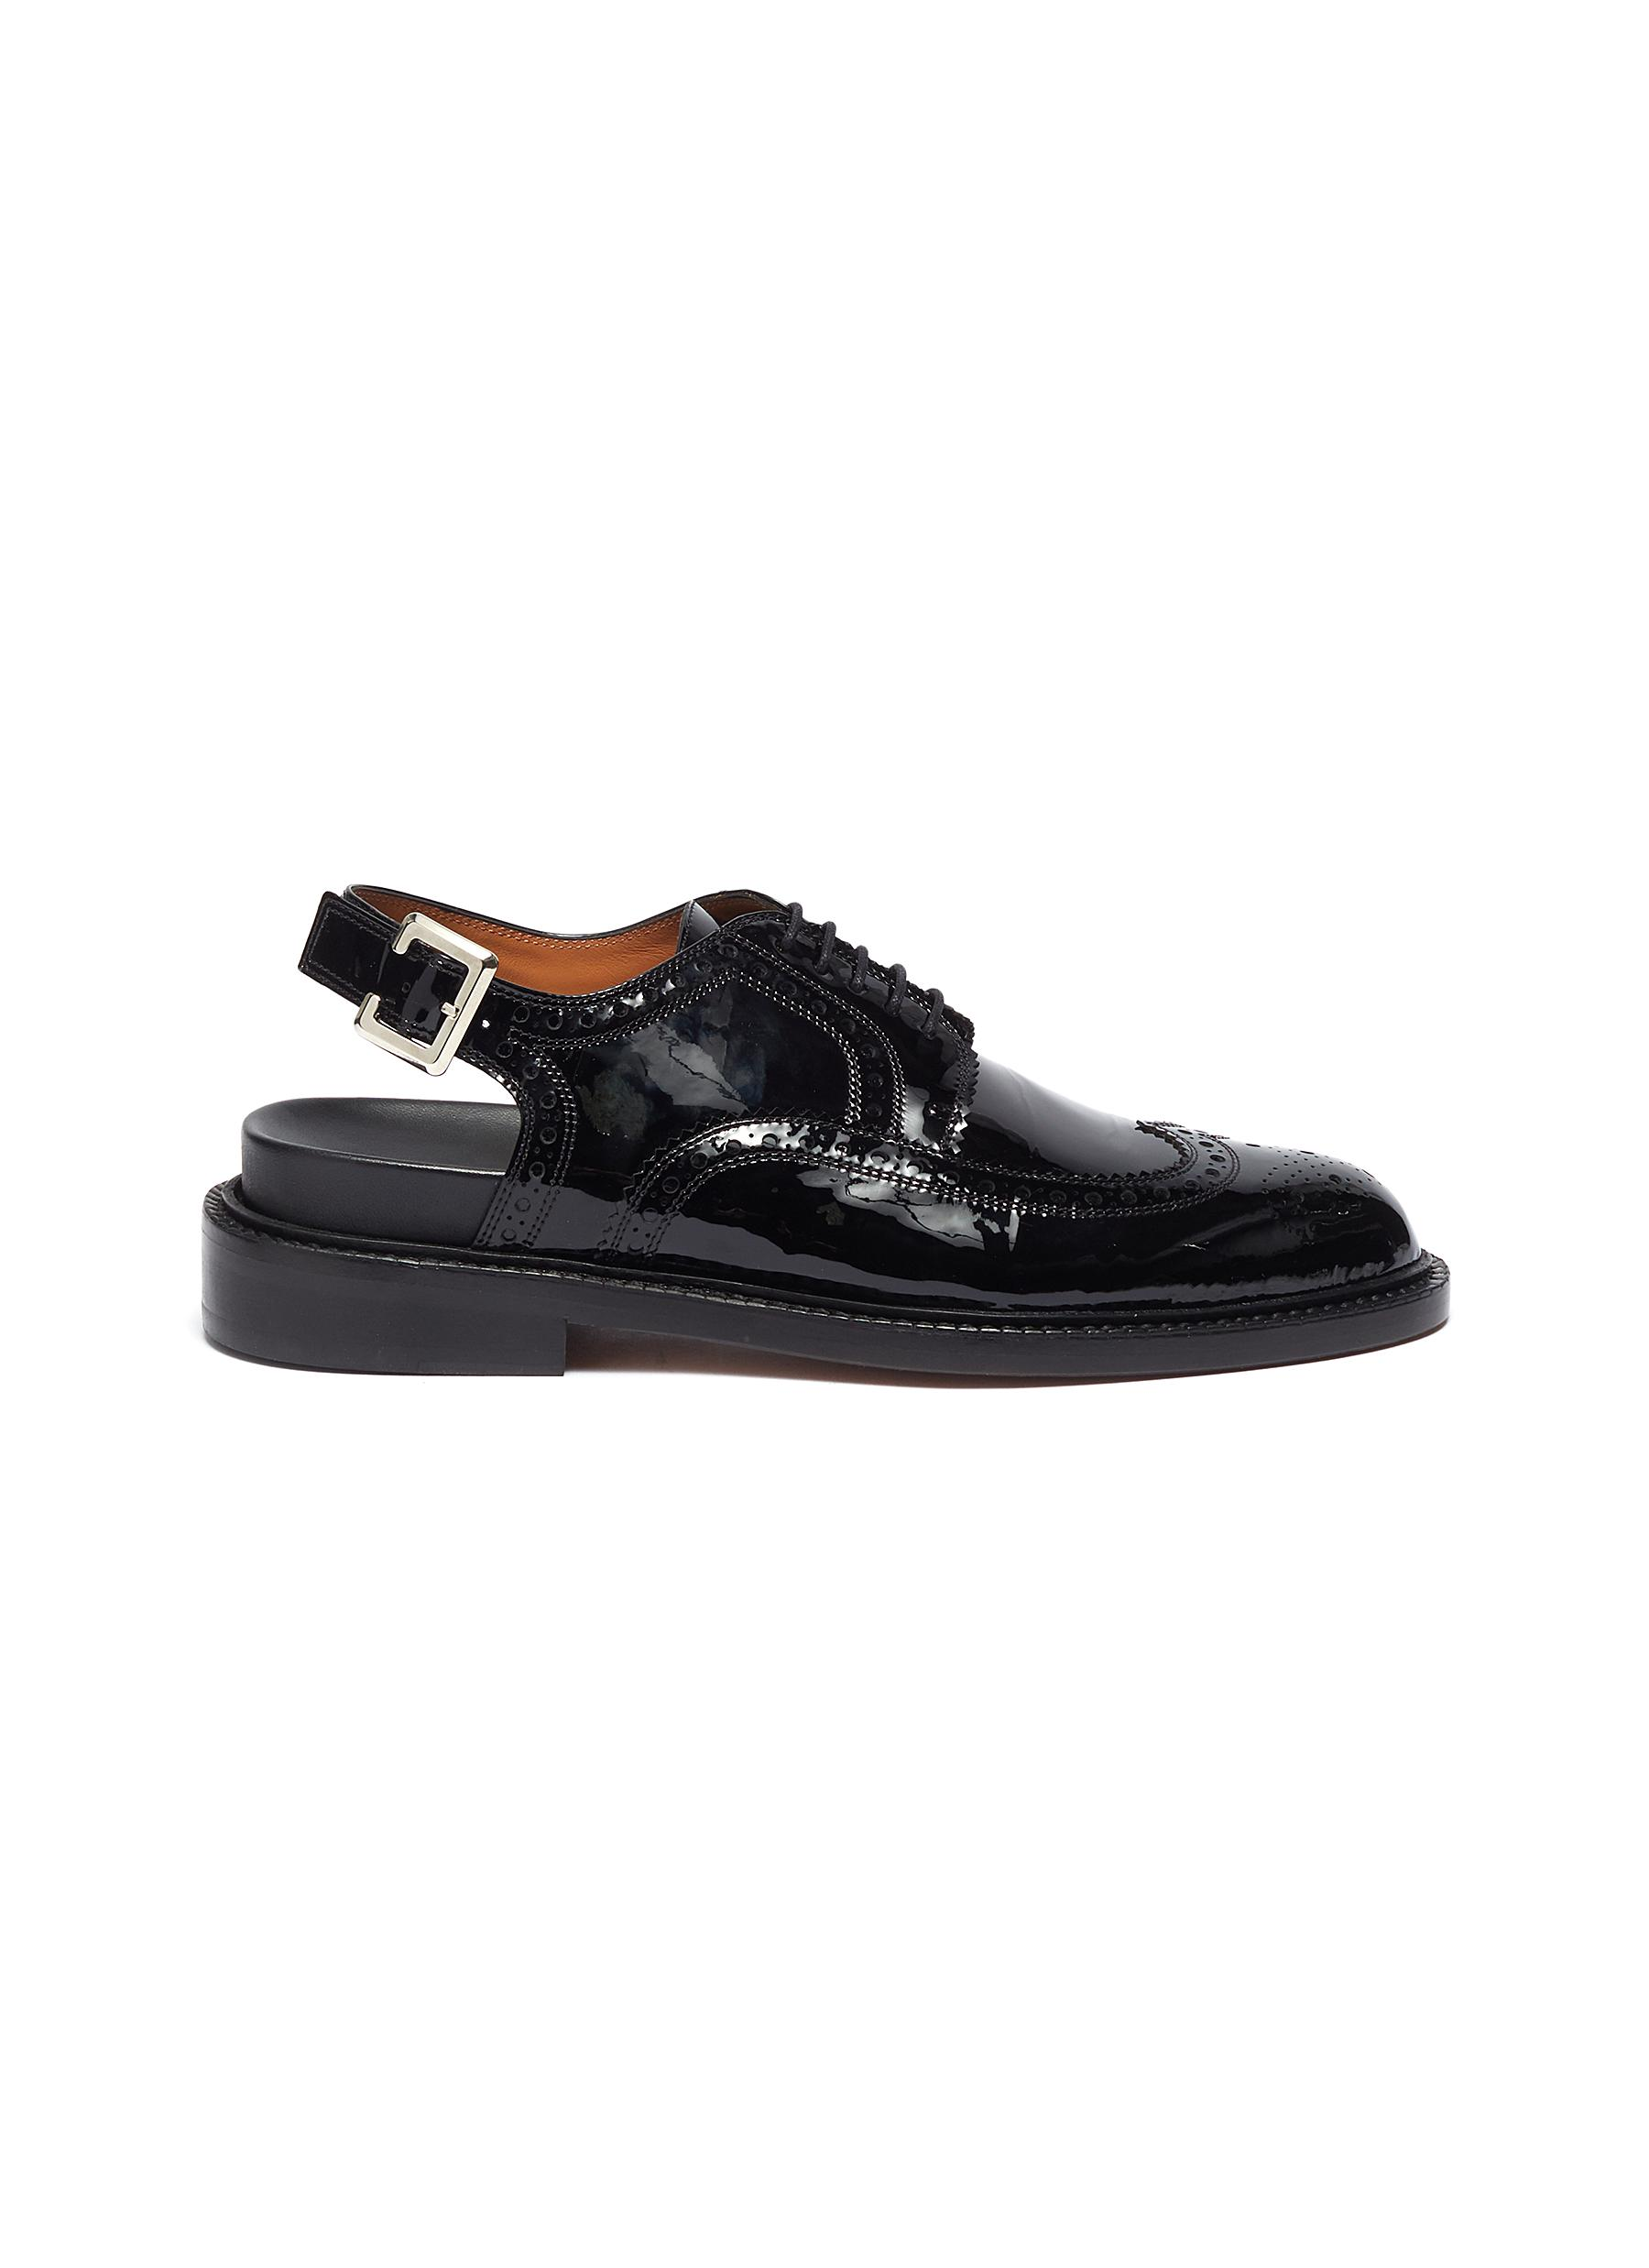 Genius patent leather slingback loafers by Clergerie